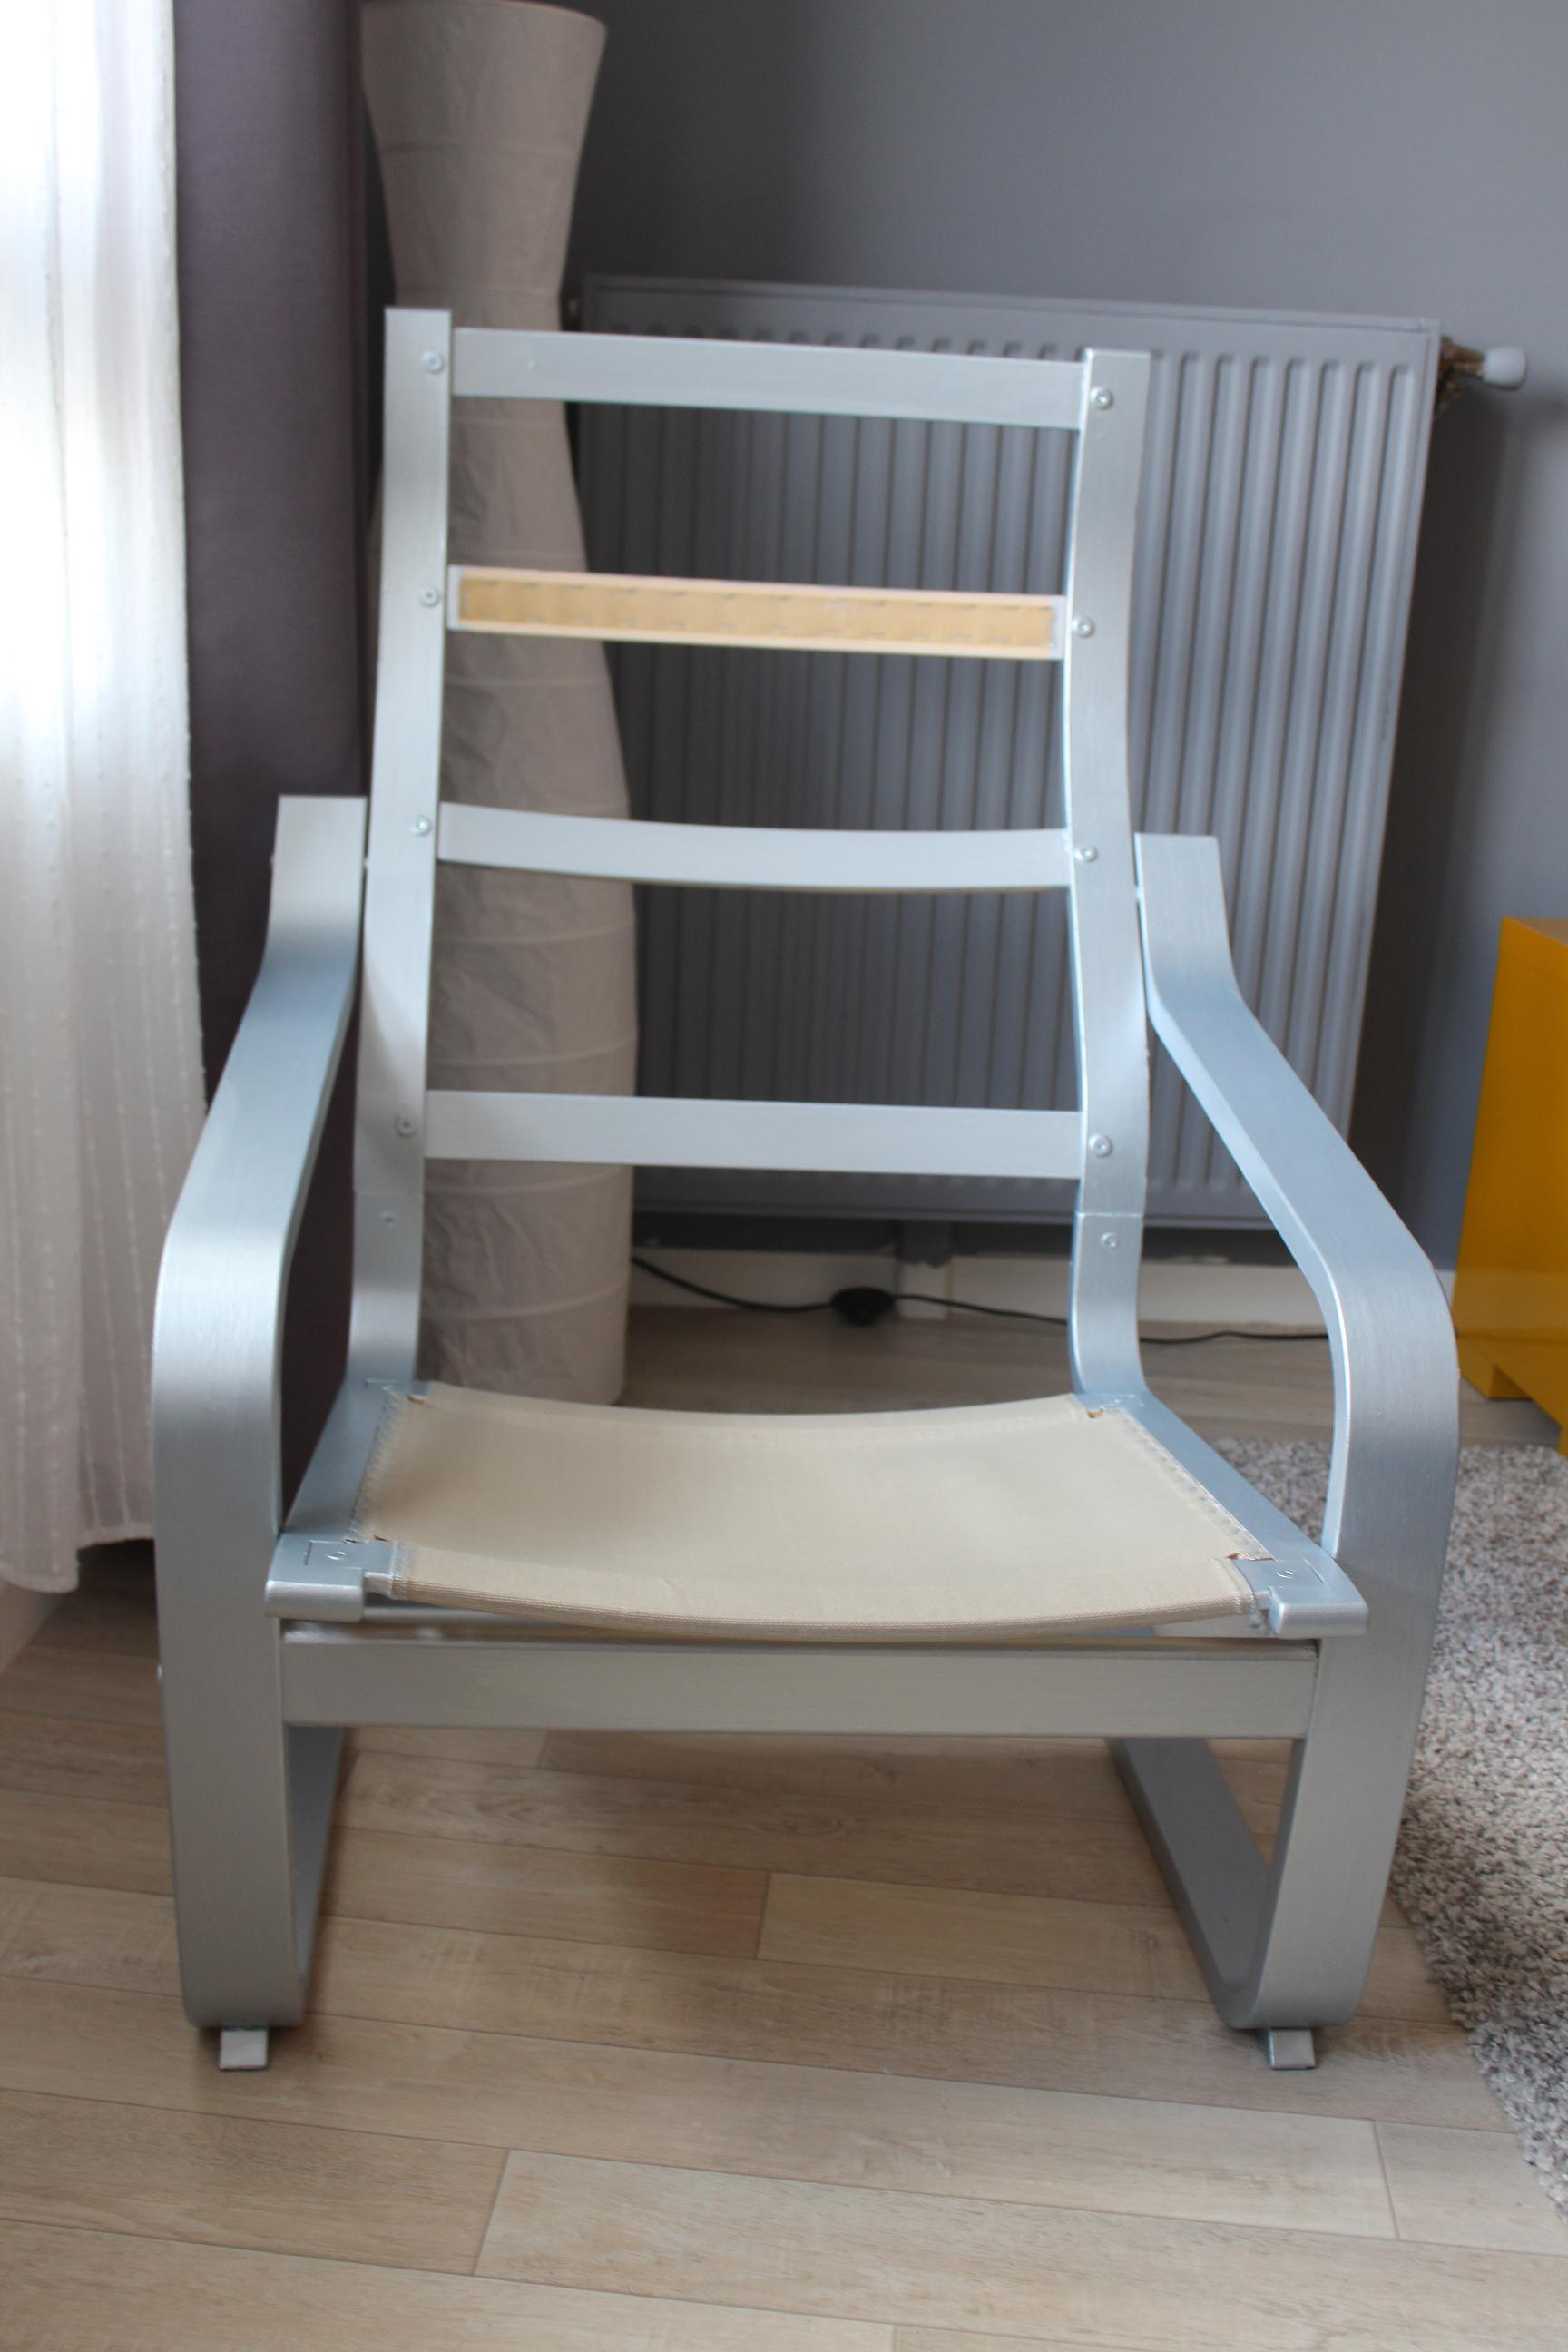 Ikea hacking fauteuil po ng lapetitemaisoncouture for Housse fauteuil poang